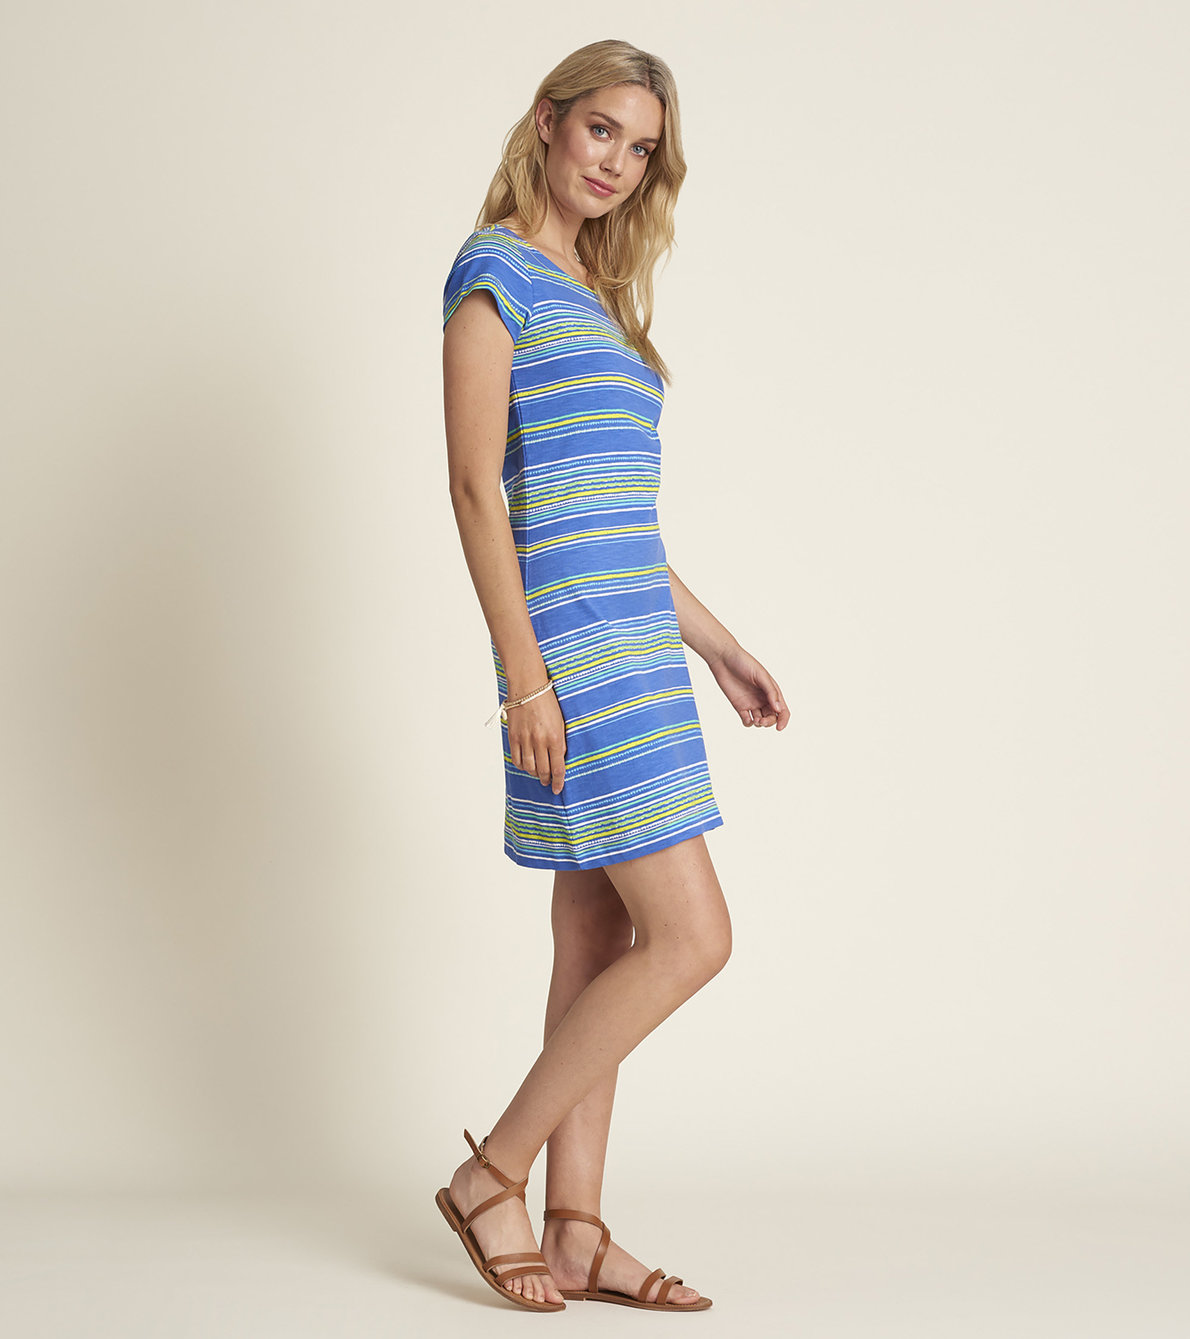 View larger image of Nellie Dress - Textured Stripes